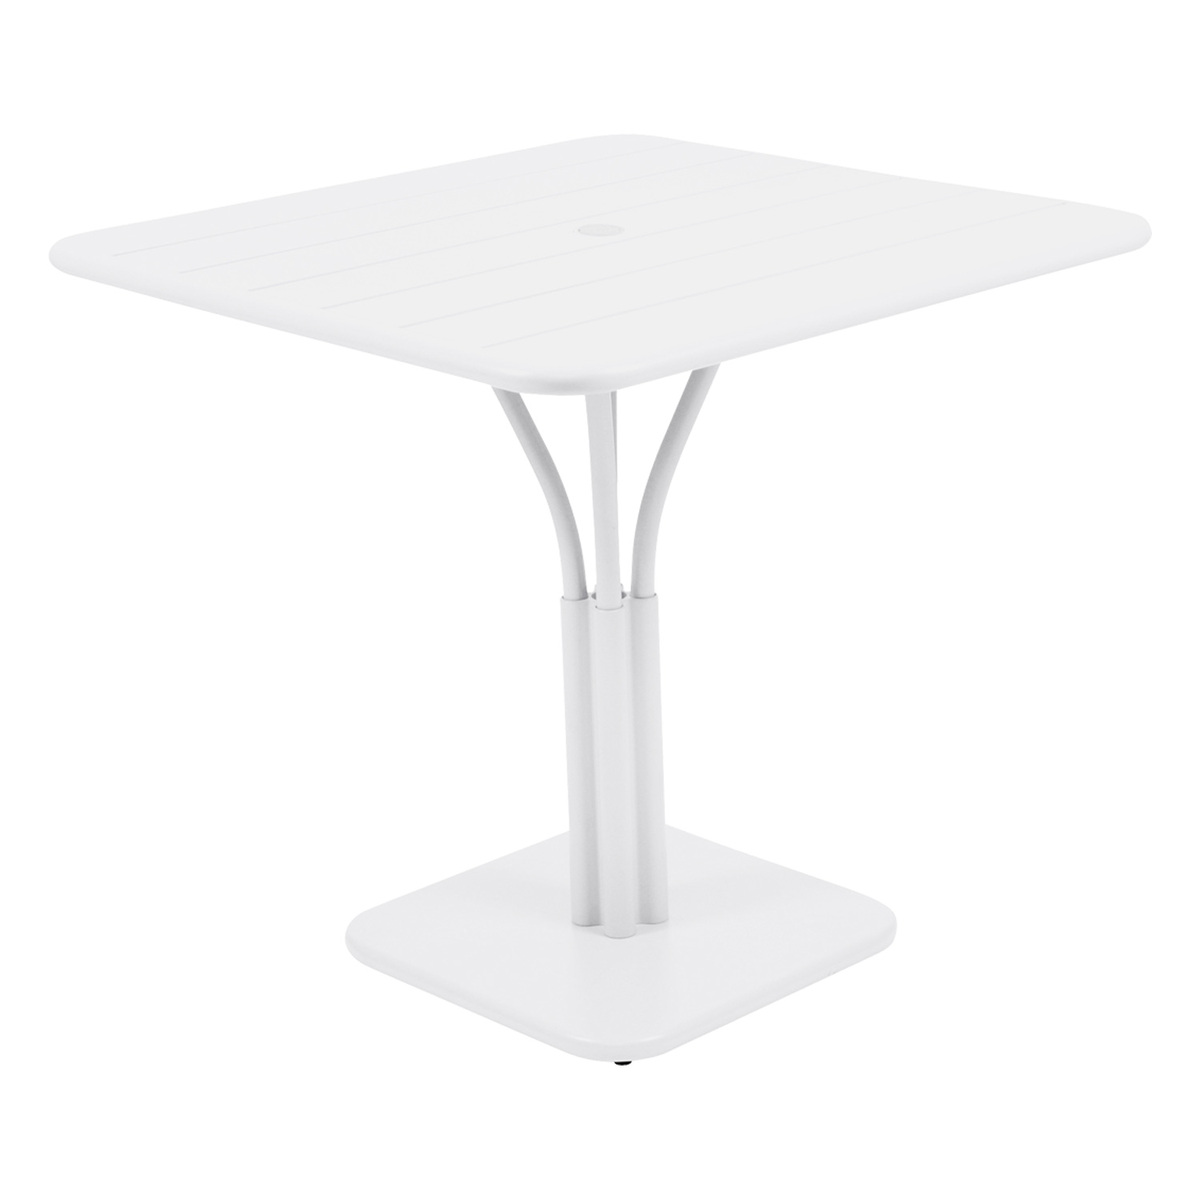 Fermob Luxembourg table, 80 x 80 cm, cotton white, with pedestal from Fermob